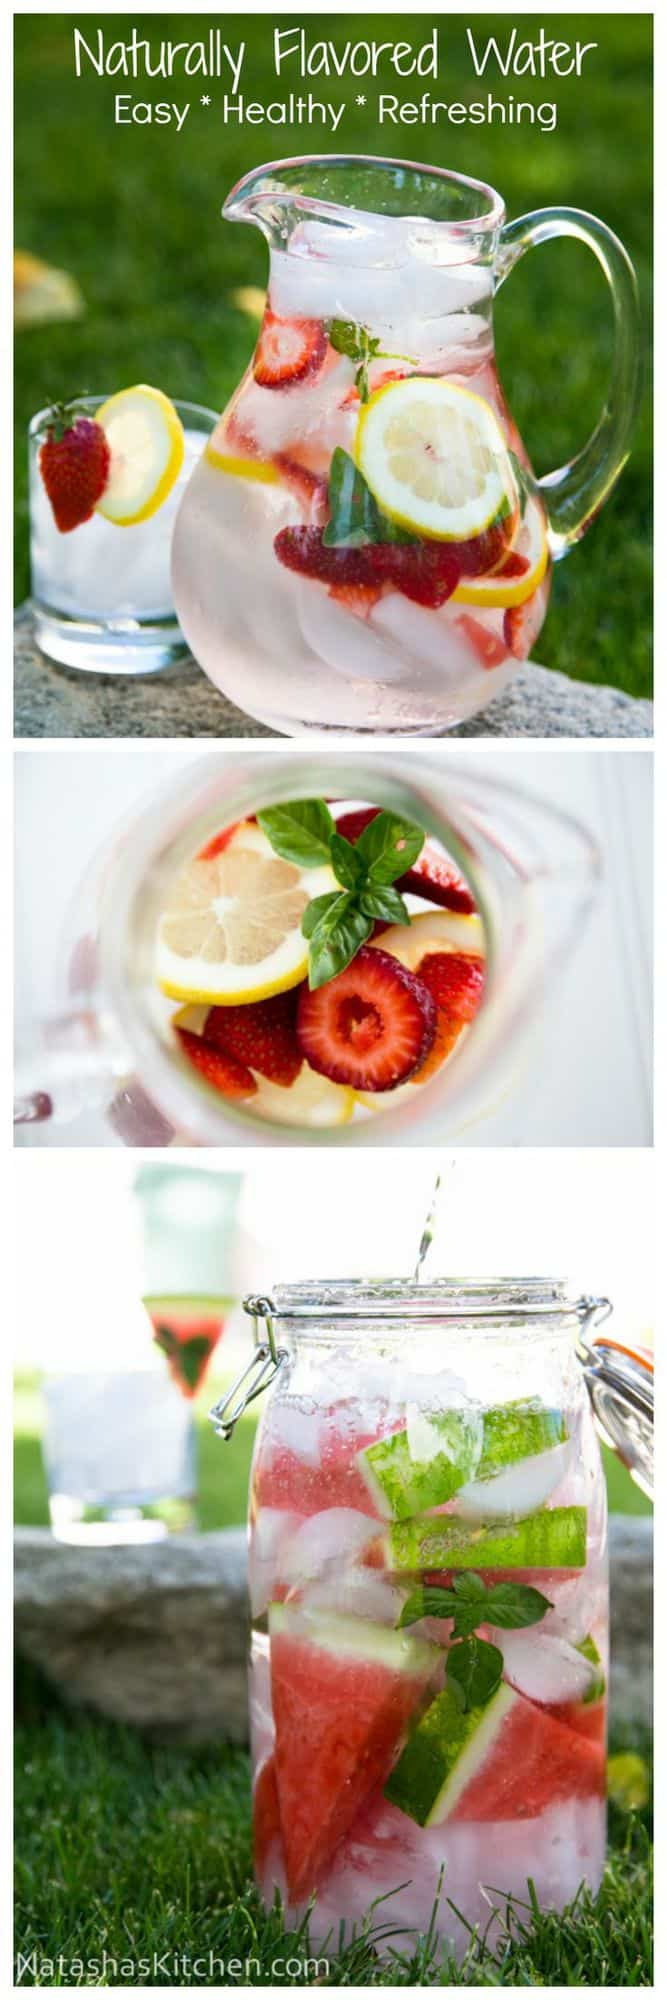 What Is Infused Water?